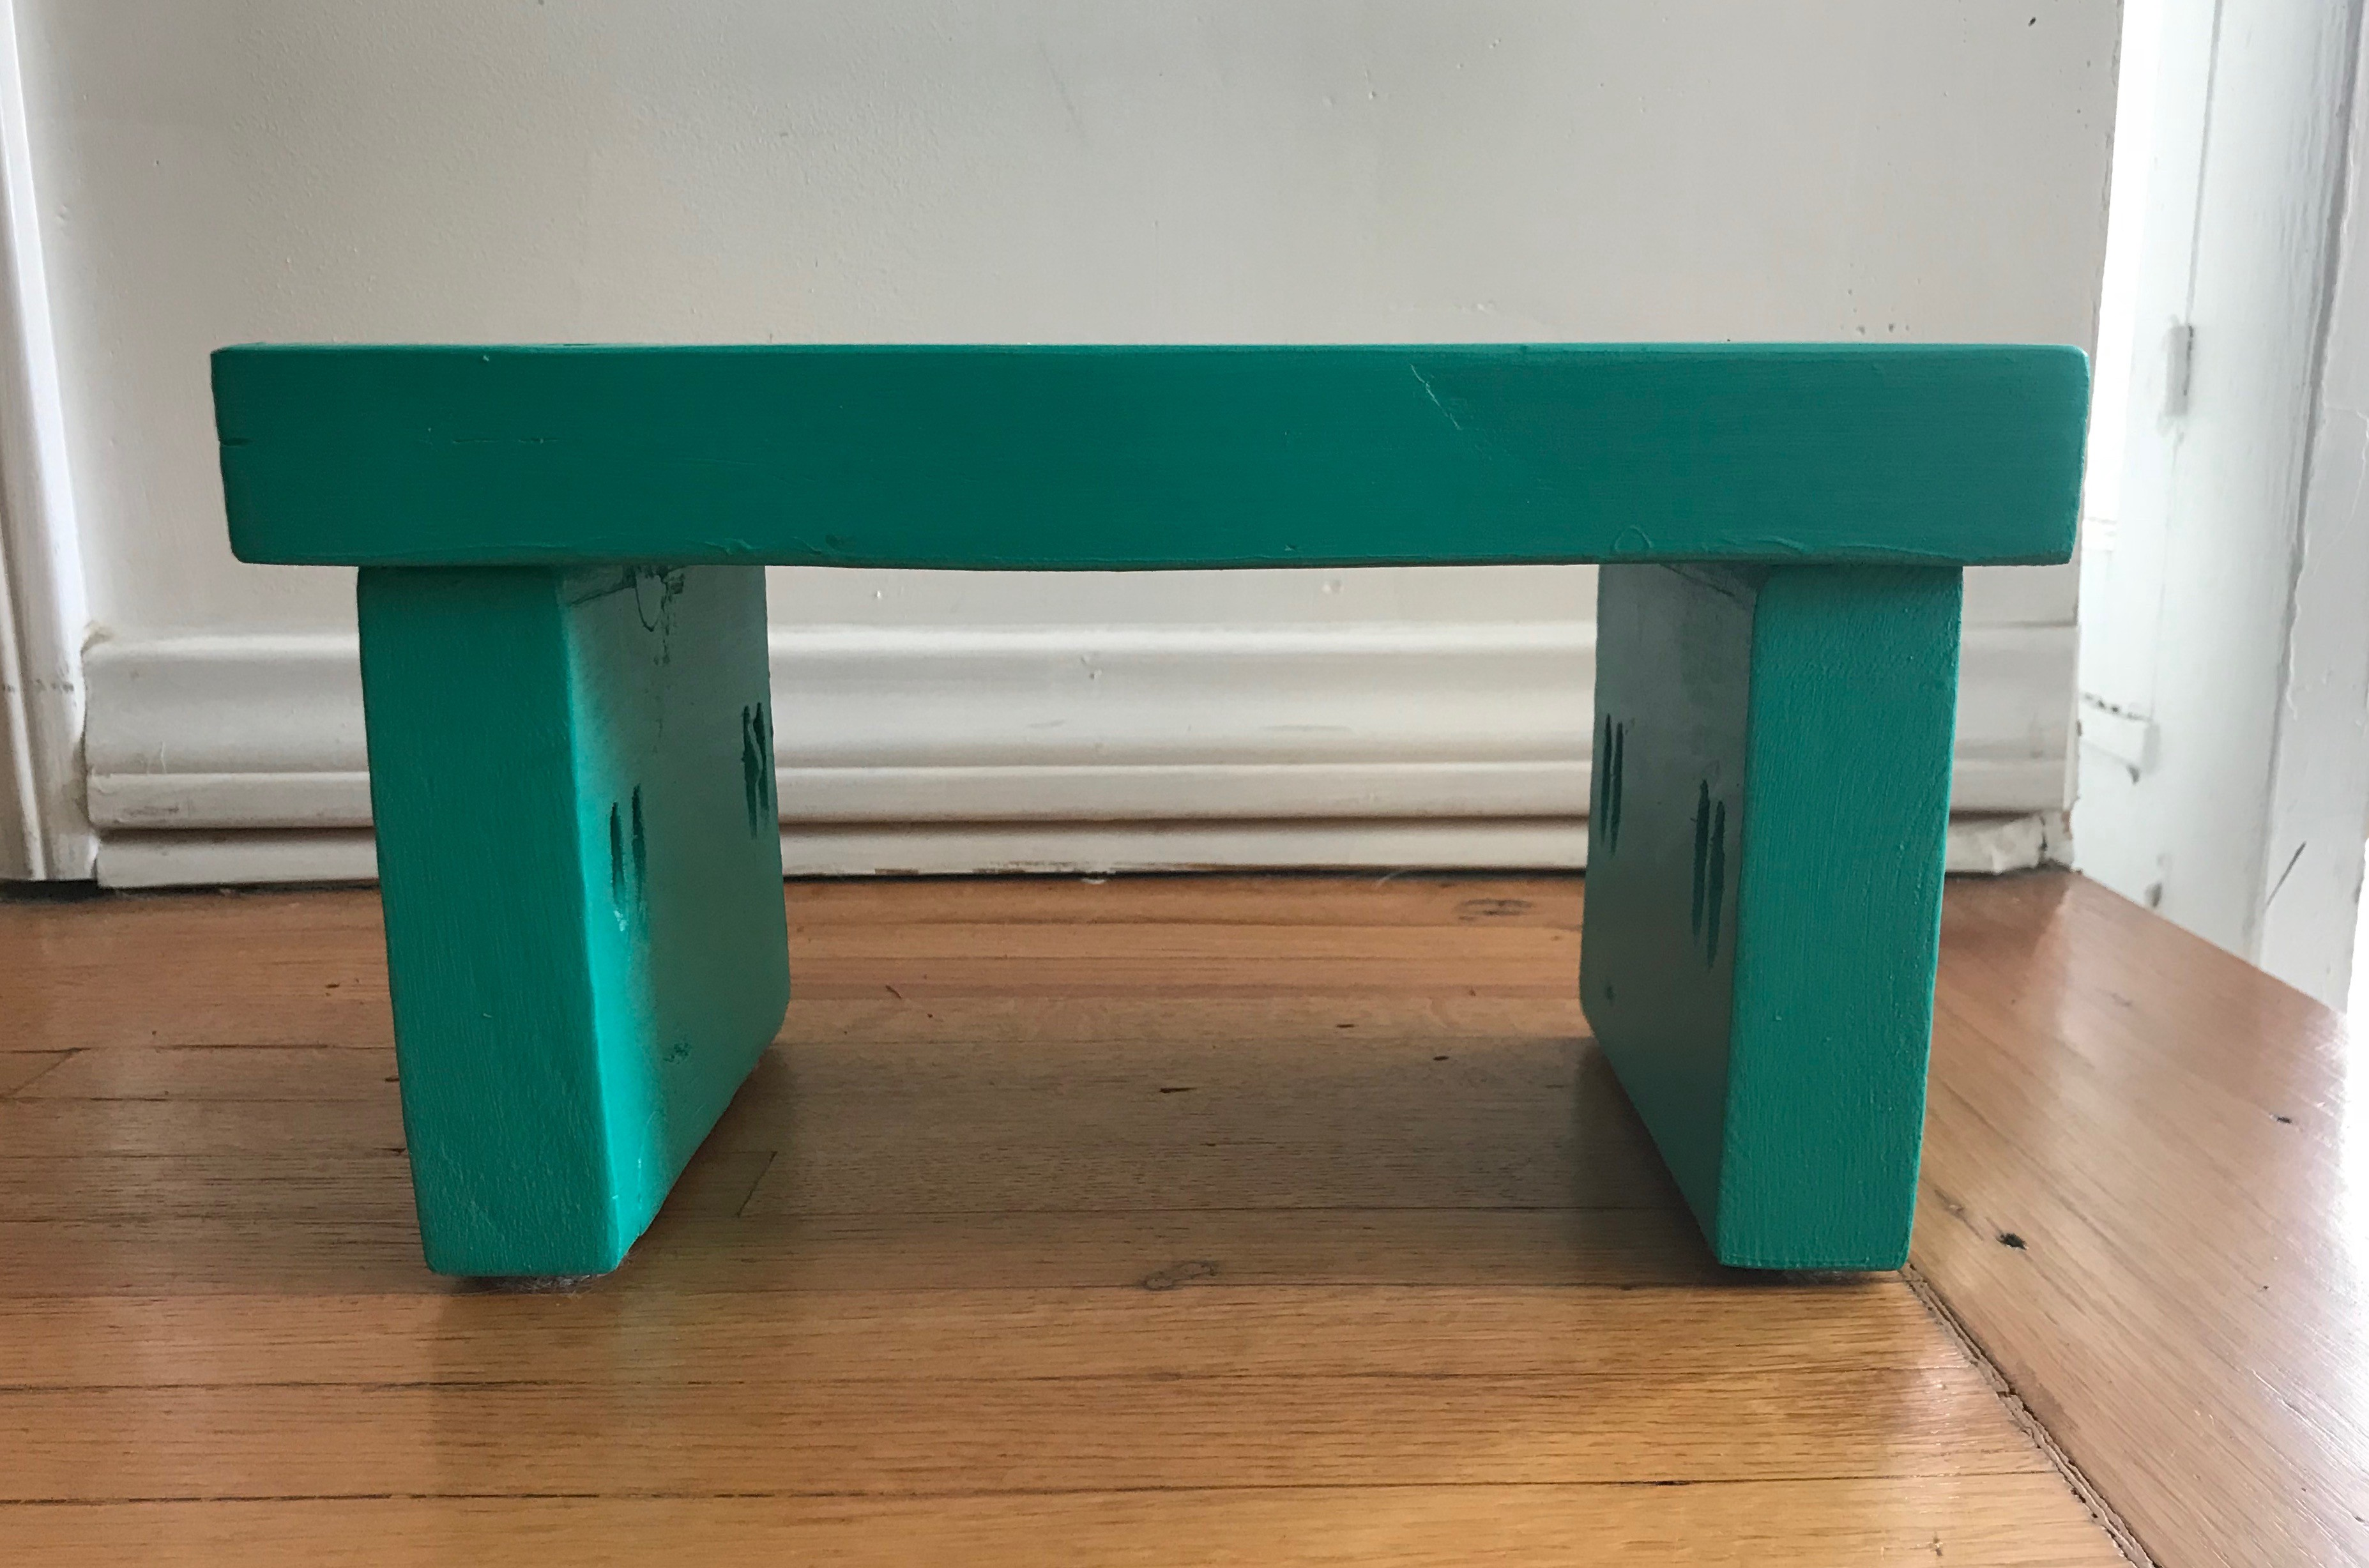 Diy The Simplest Stool On Custom Furniture And Pocket Joints By Jonathan Kim Rethink Reviews Medium